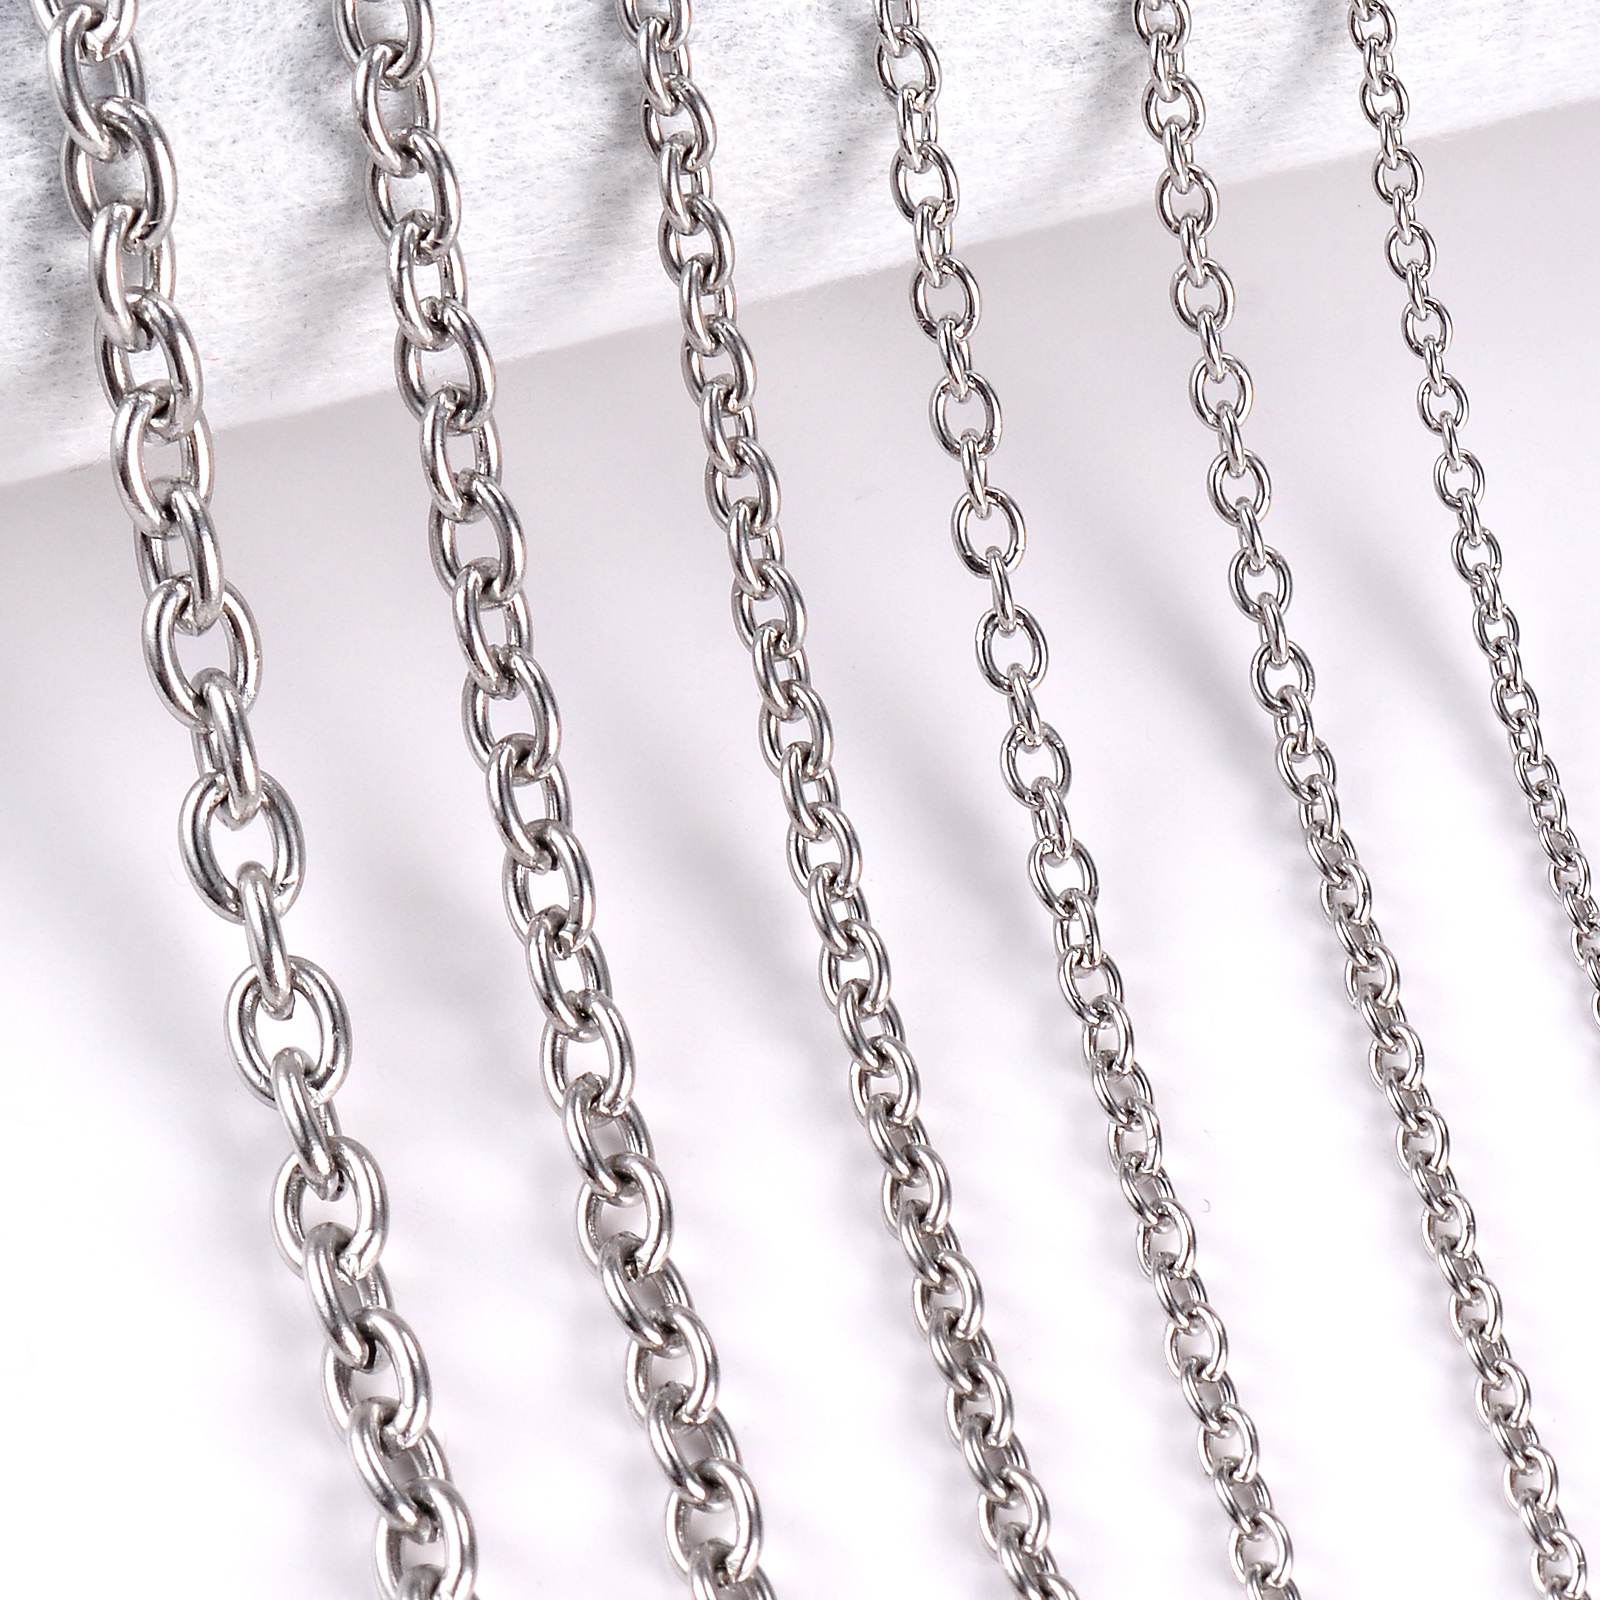 1Pc Stainless Steel Cross O Chain Necklace For Women Men DIY Jewelry Thin Bracelet Necklace(China)